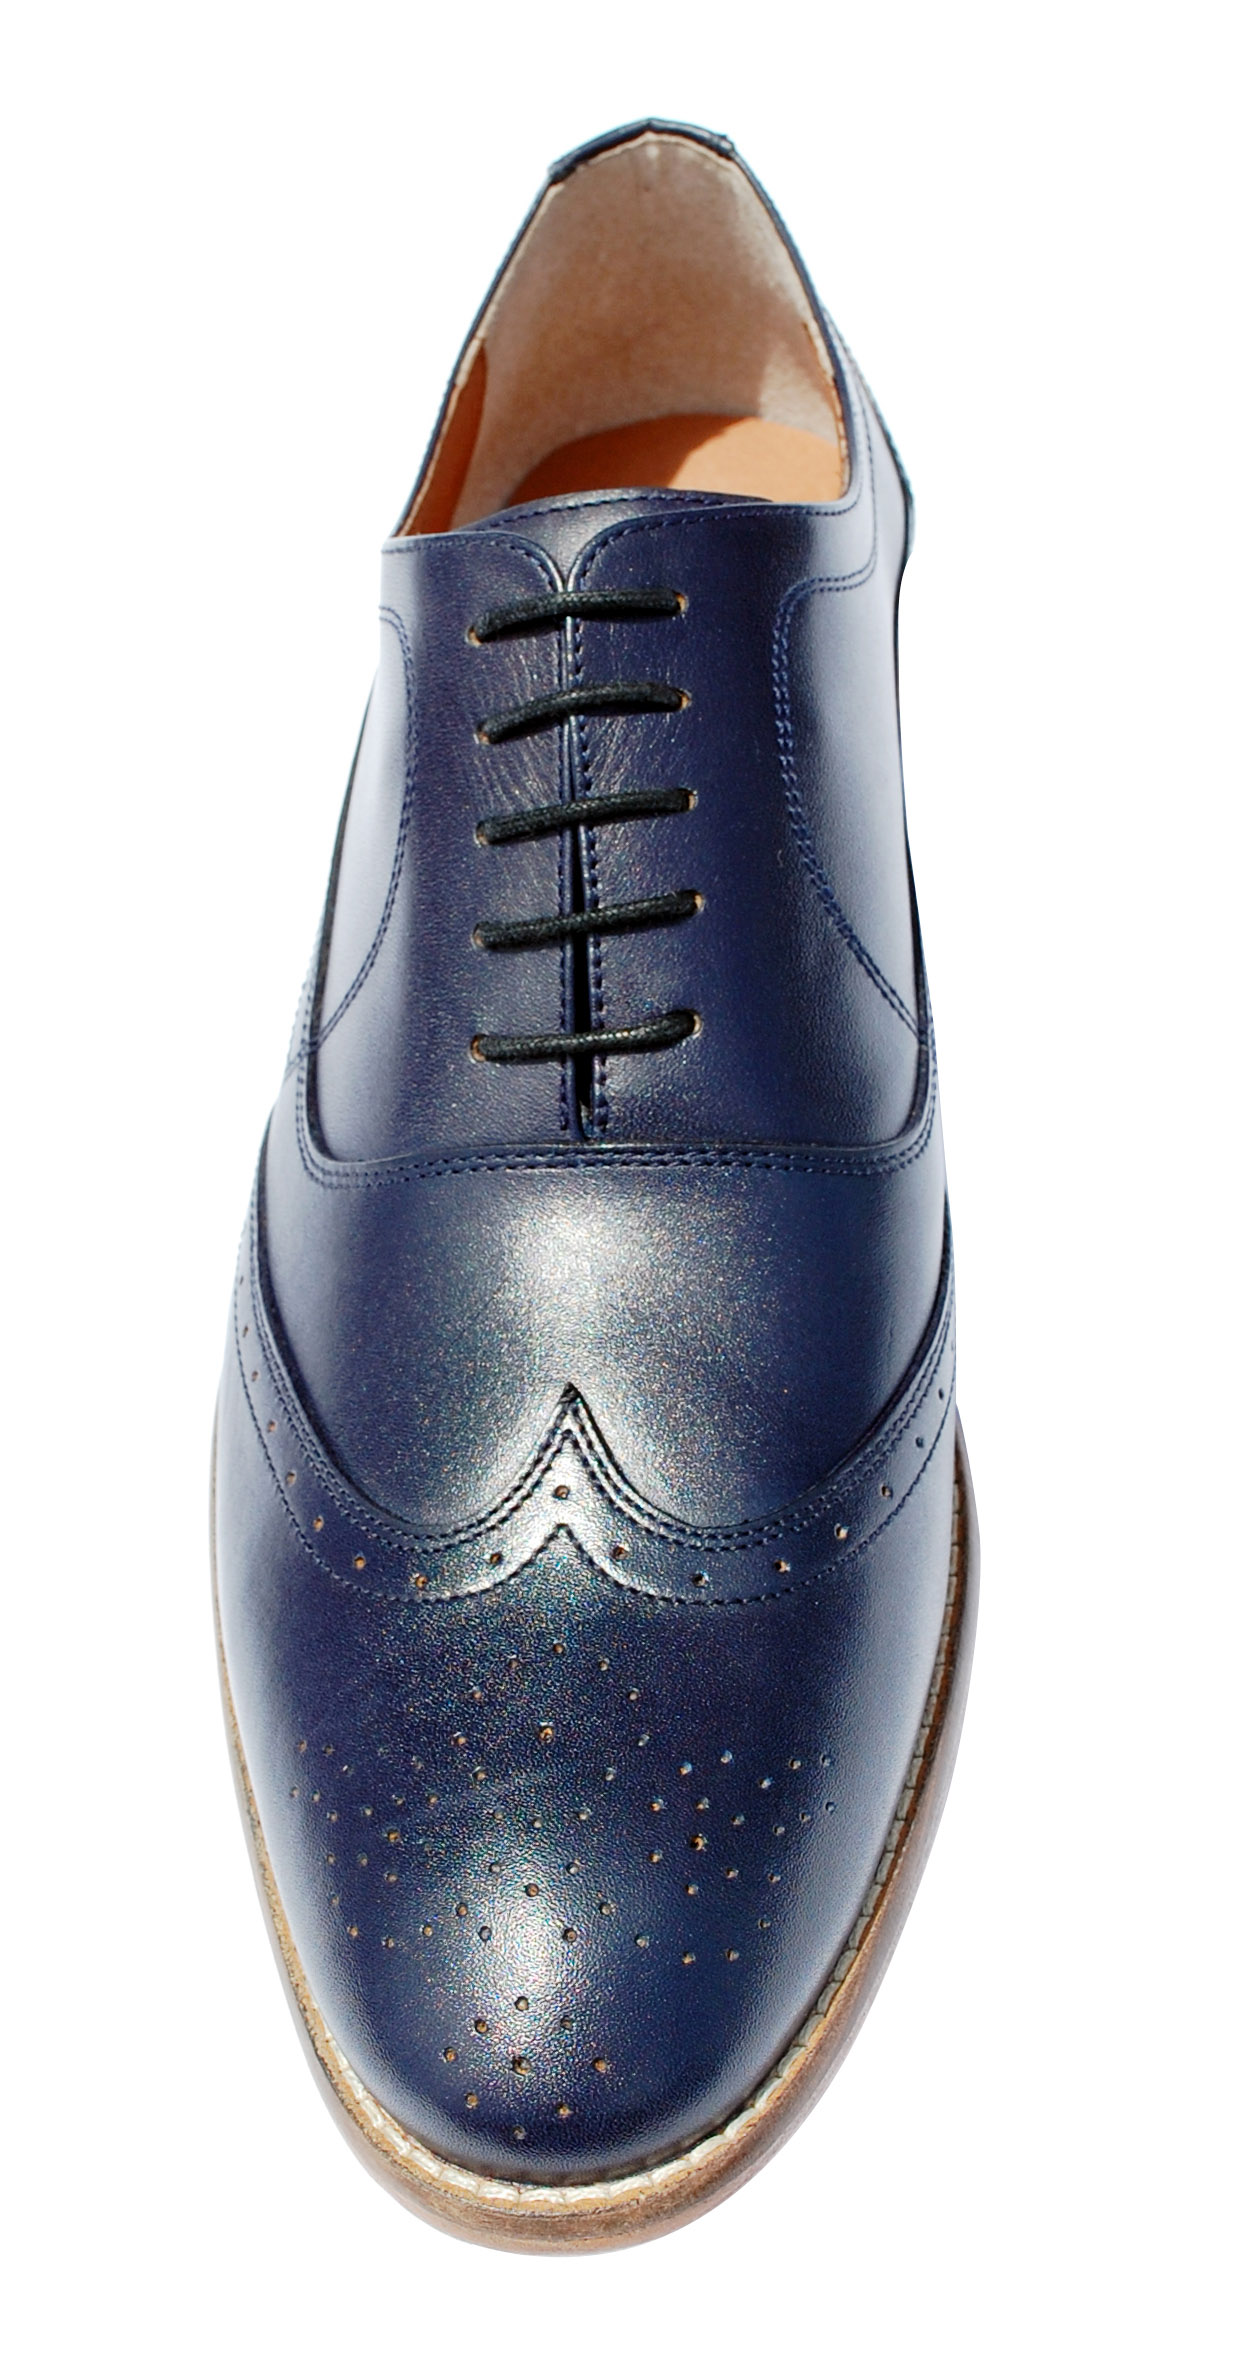 Oxford Dress Shoe